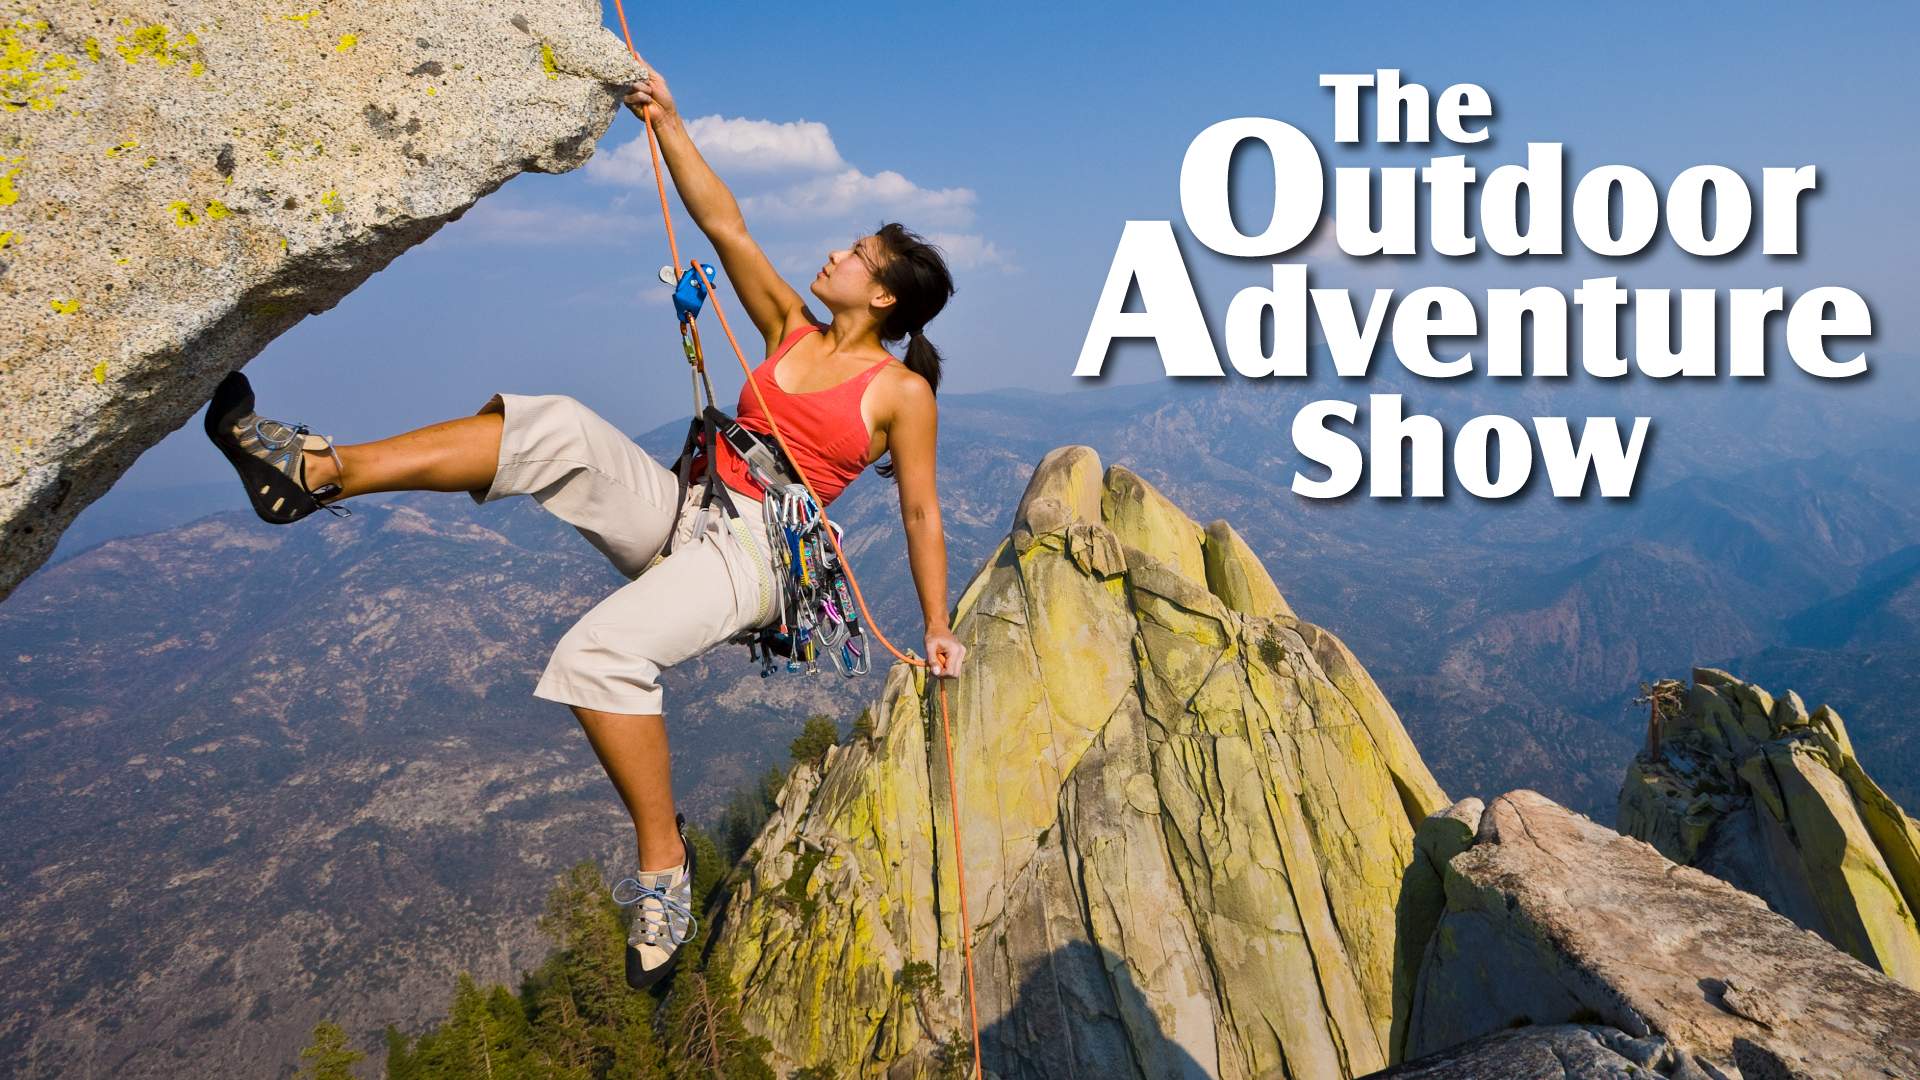 The Outdoor Adventure Show